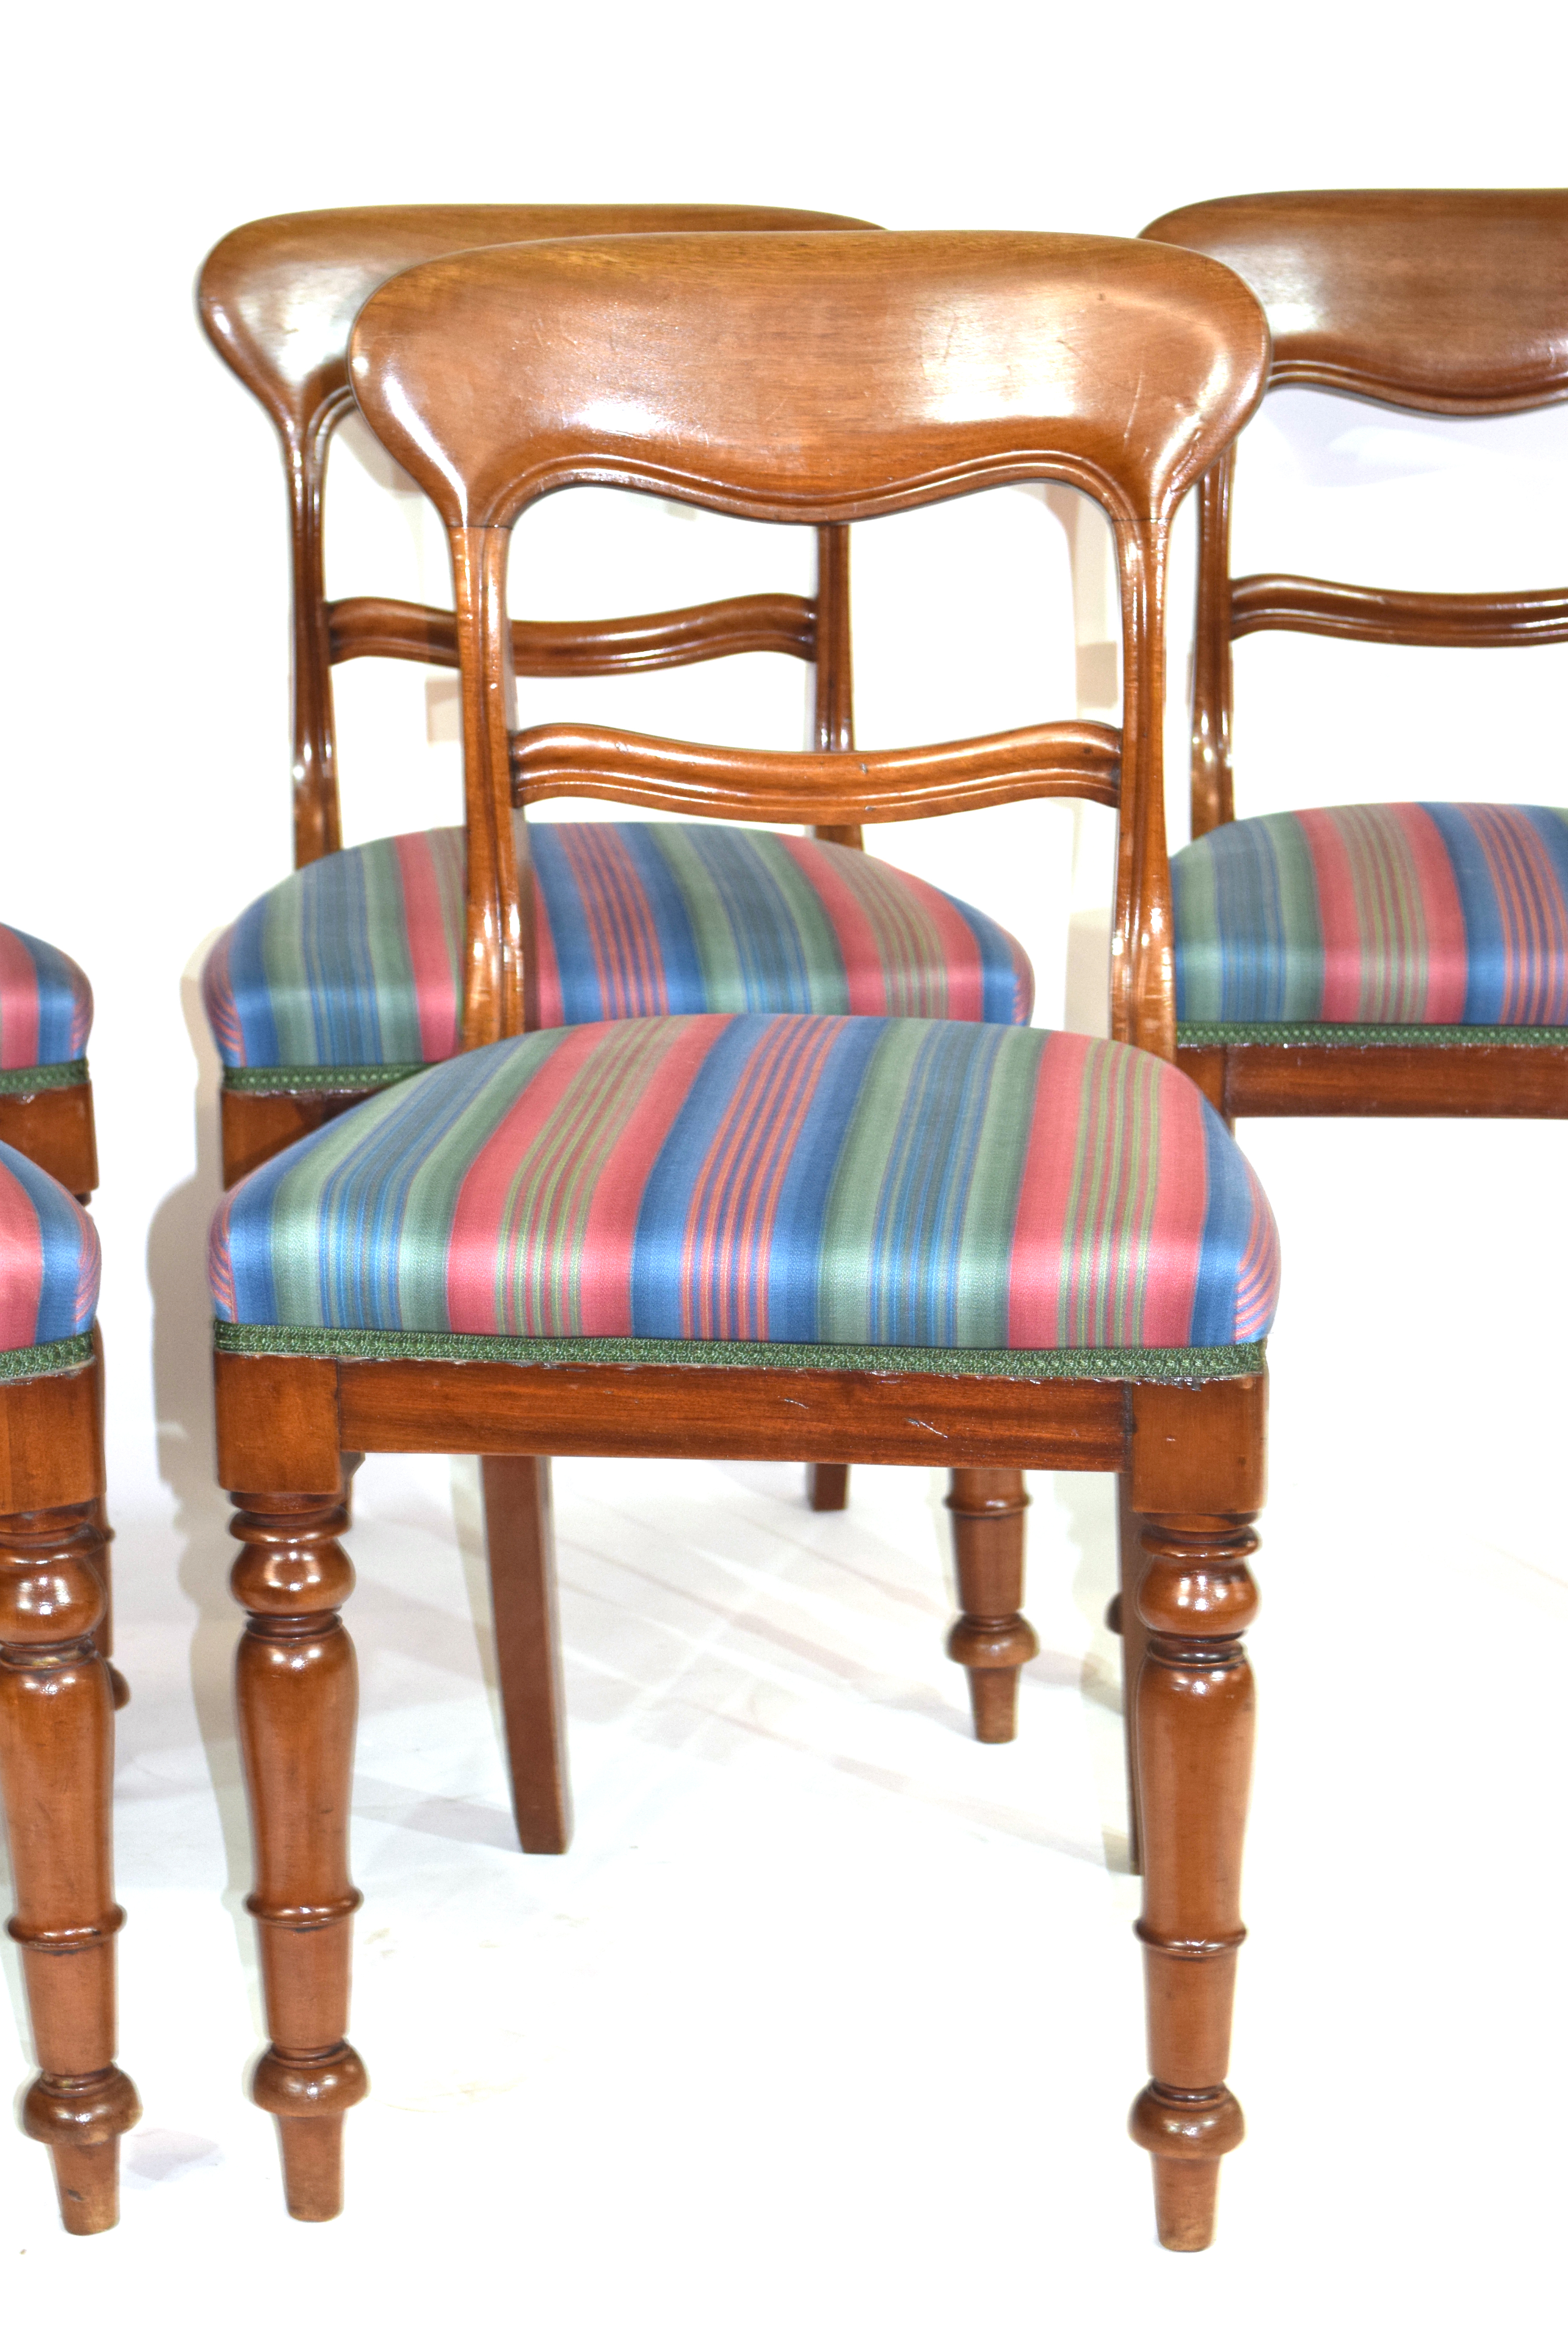 Set of six Victorian mahogany bar back dining chairs, comprising one carver and five single chairs - Image 2 of 5